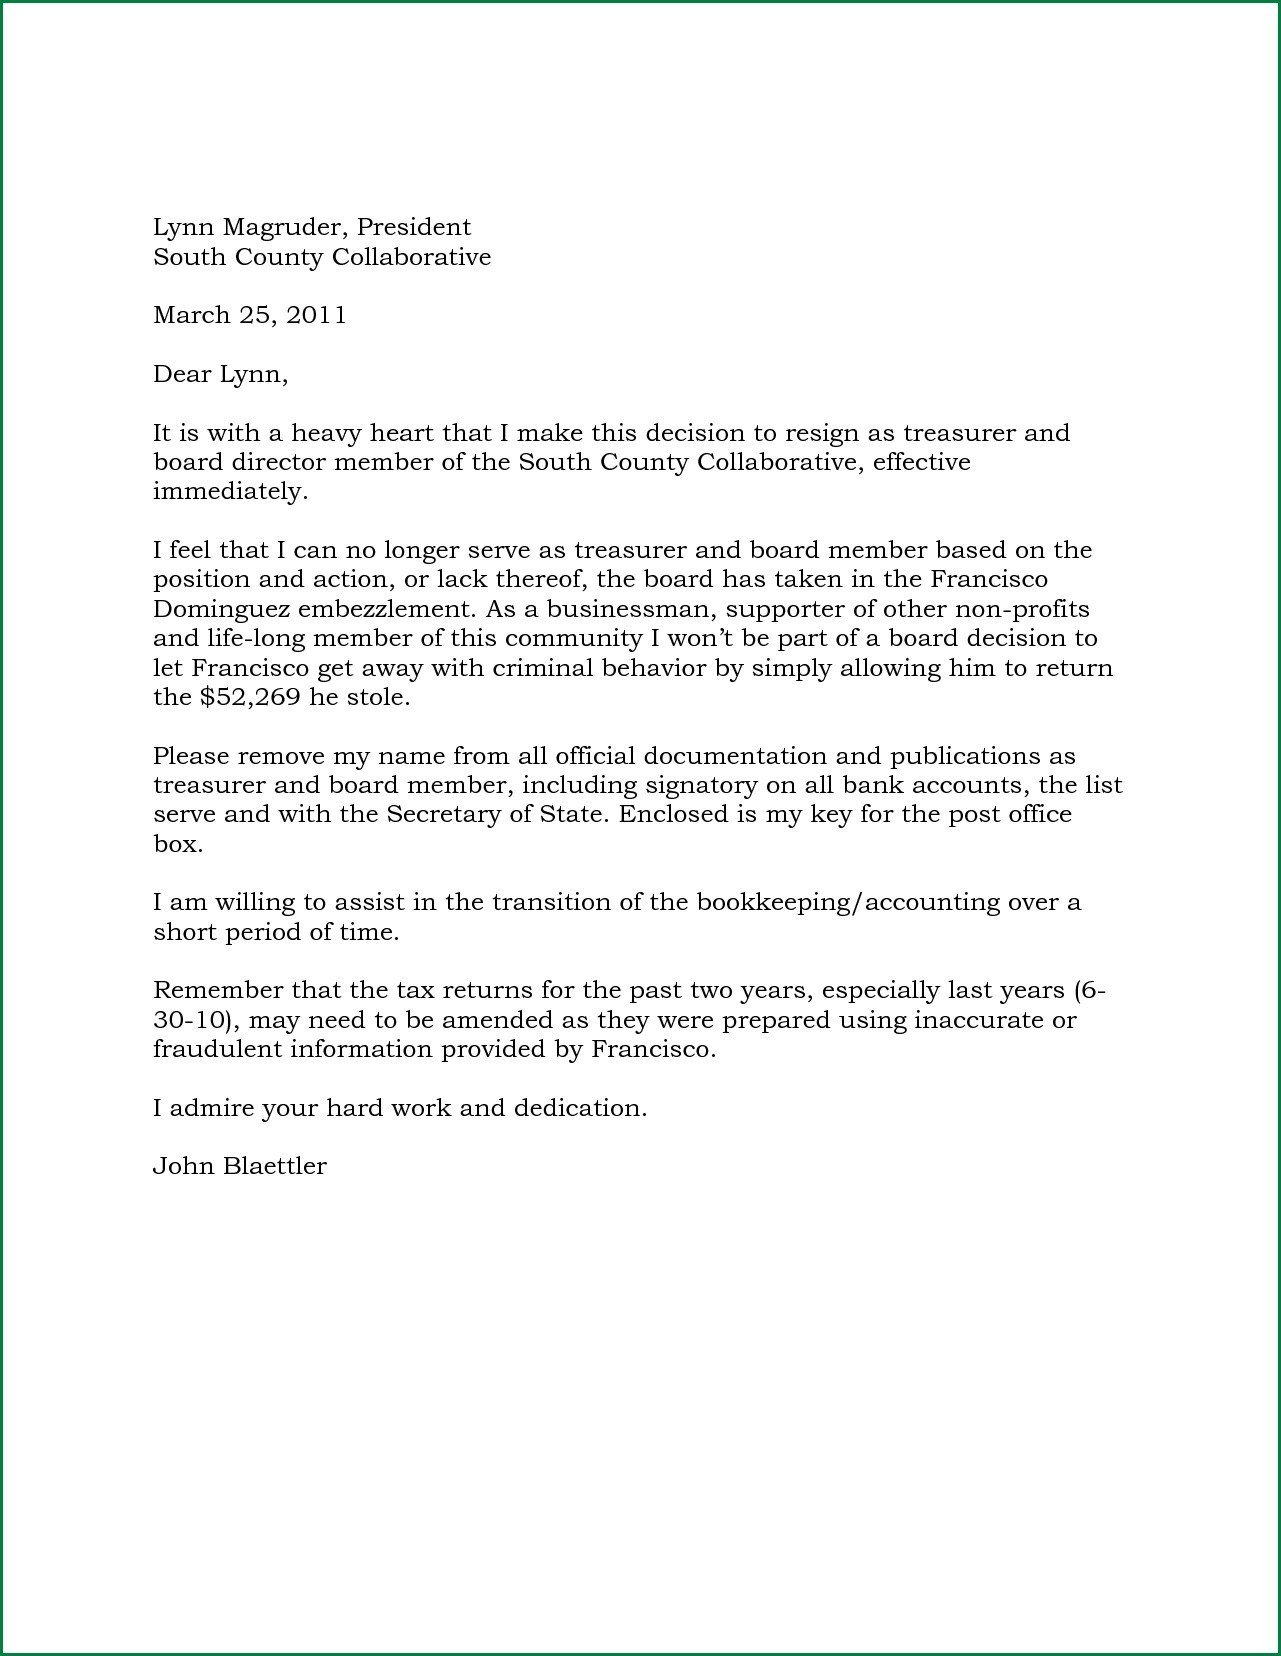 Resignation Letter From Board Of Directors Template - Sample Board Directors Application Letter Fresh Board Member